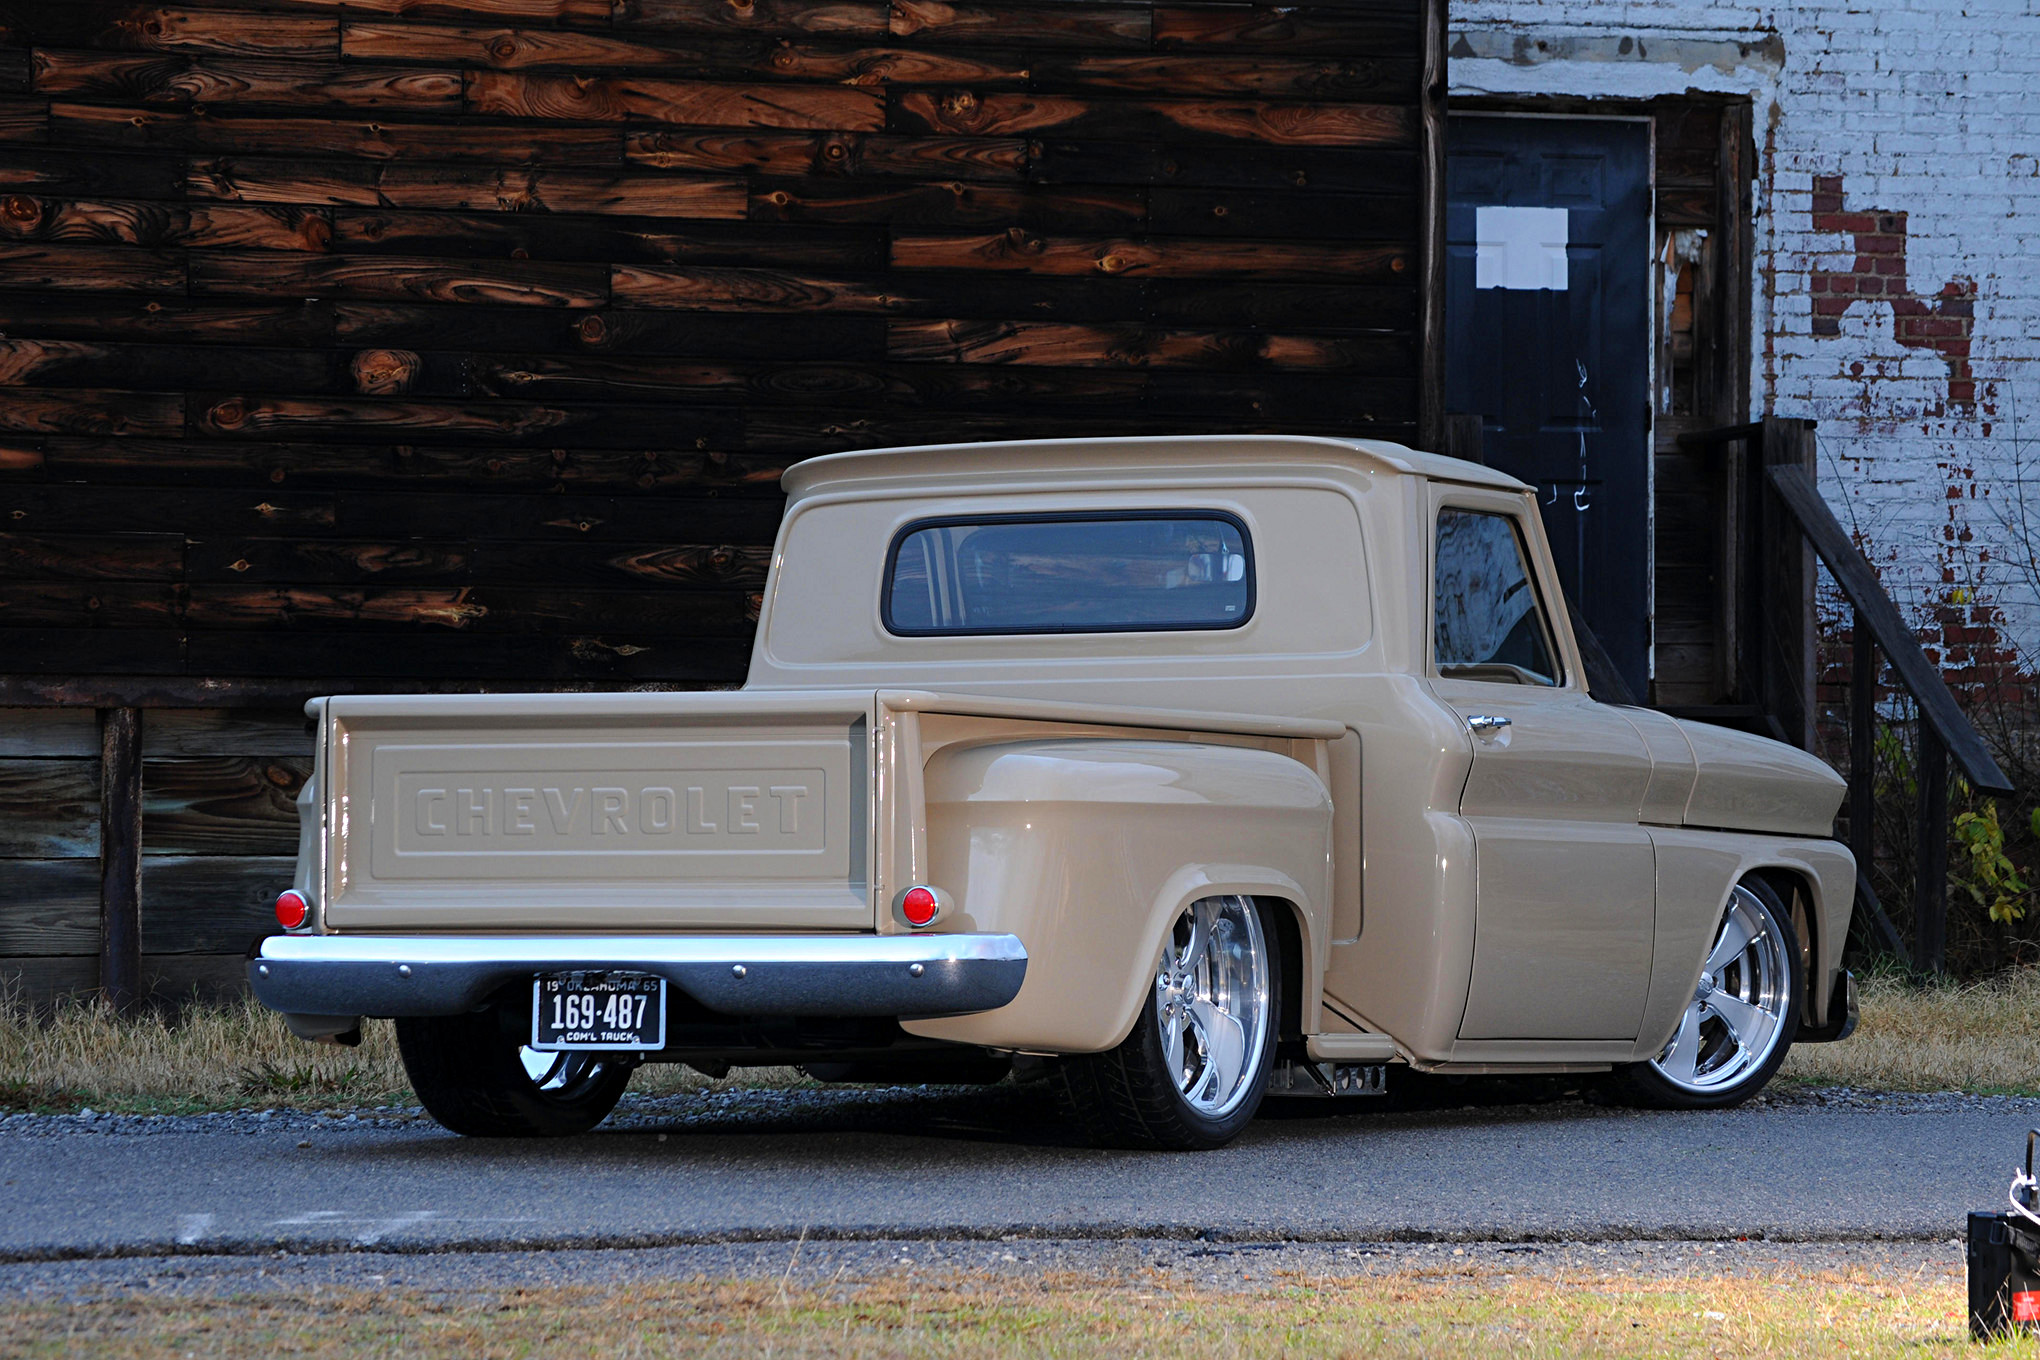 1965 Chevrolet C10 Hd Wallpaper Background Image